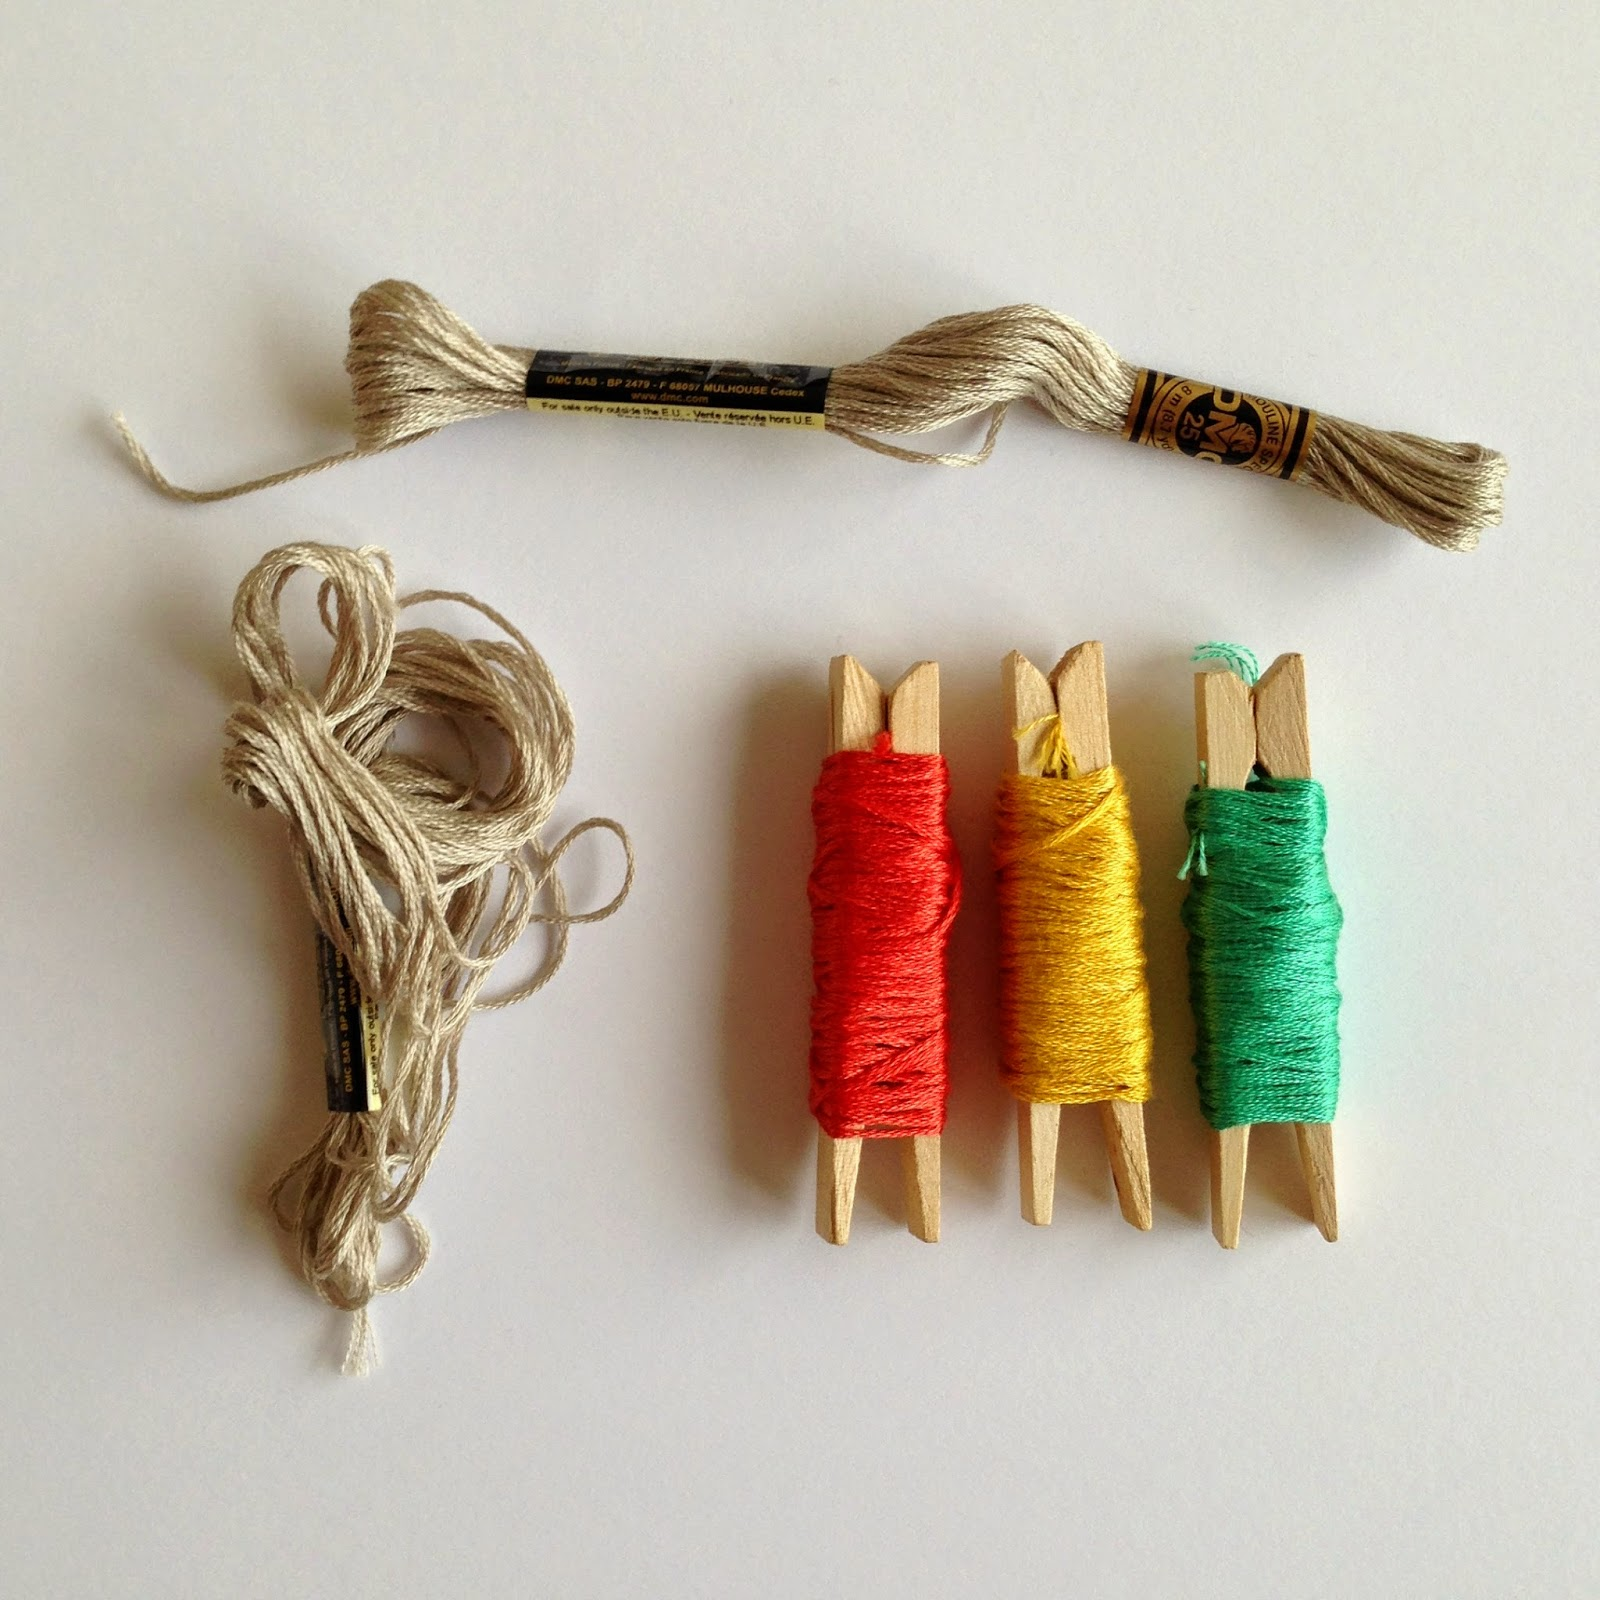 Precocious Paper Embroidery Floss Tip  Love My Fabrics